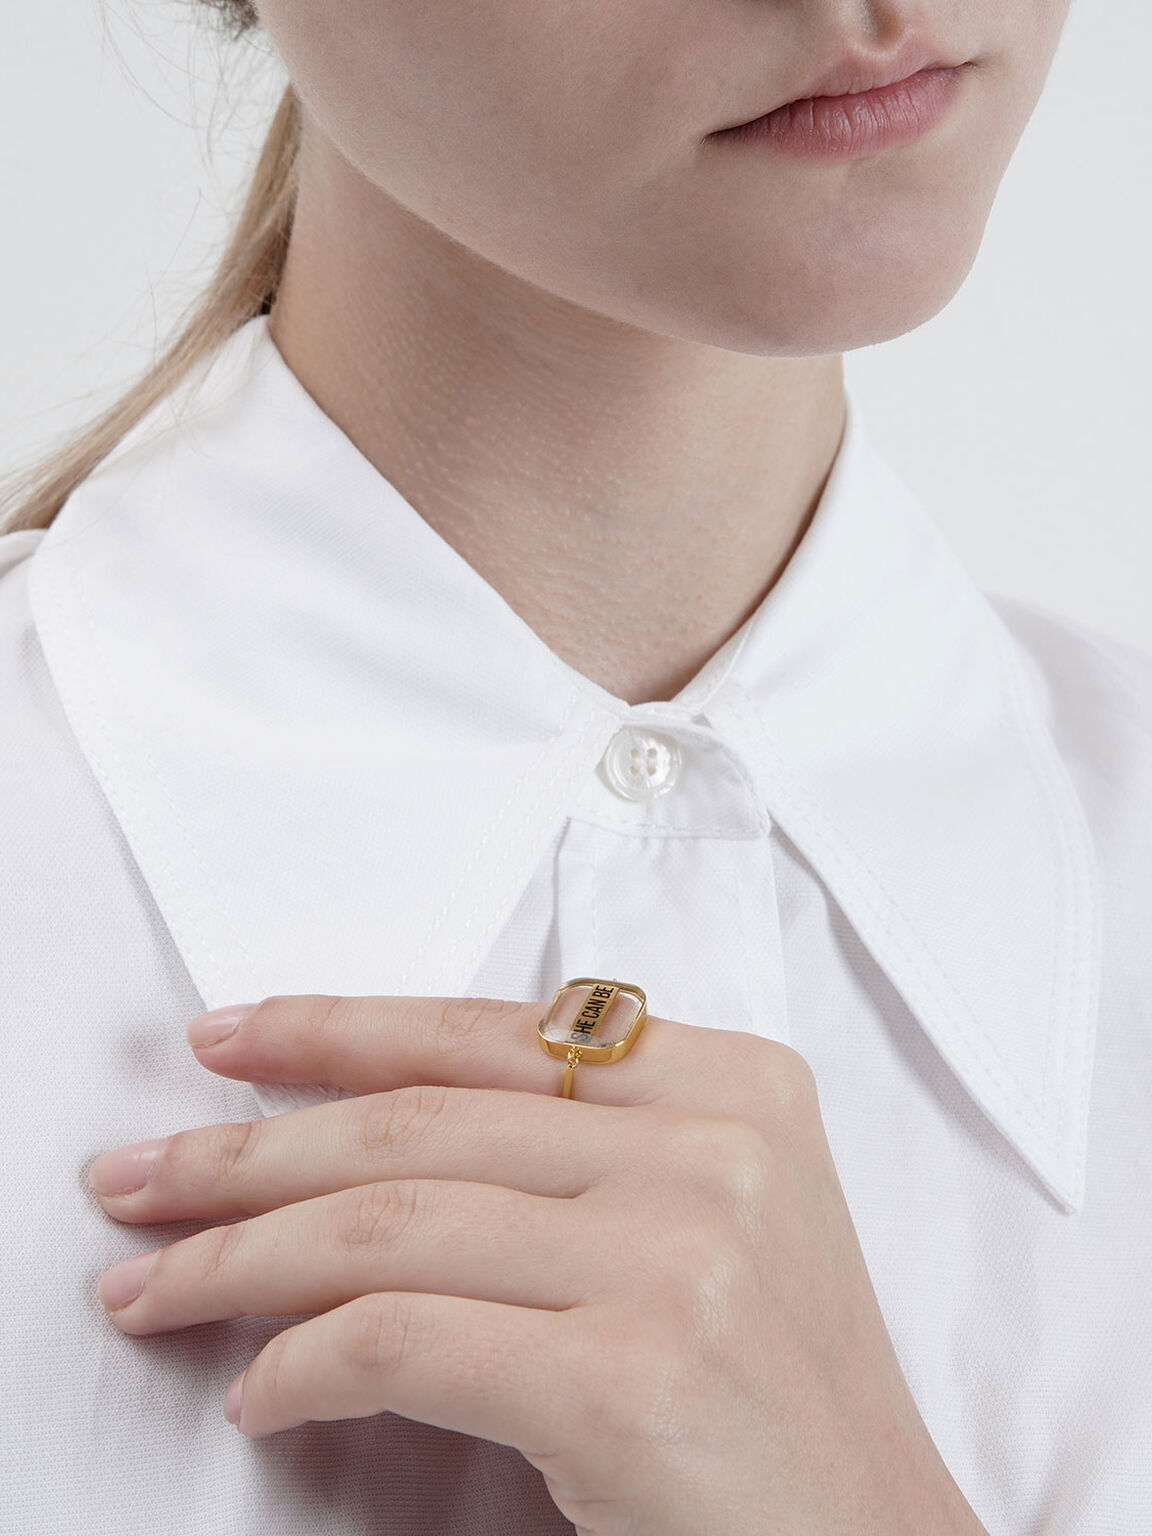 The Purpose Collection -  'She Can Be' Ring, Gold, hi-res